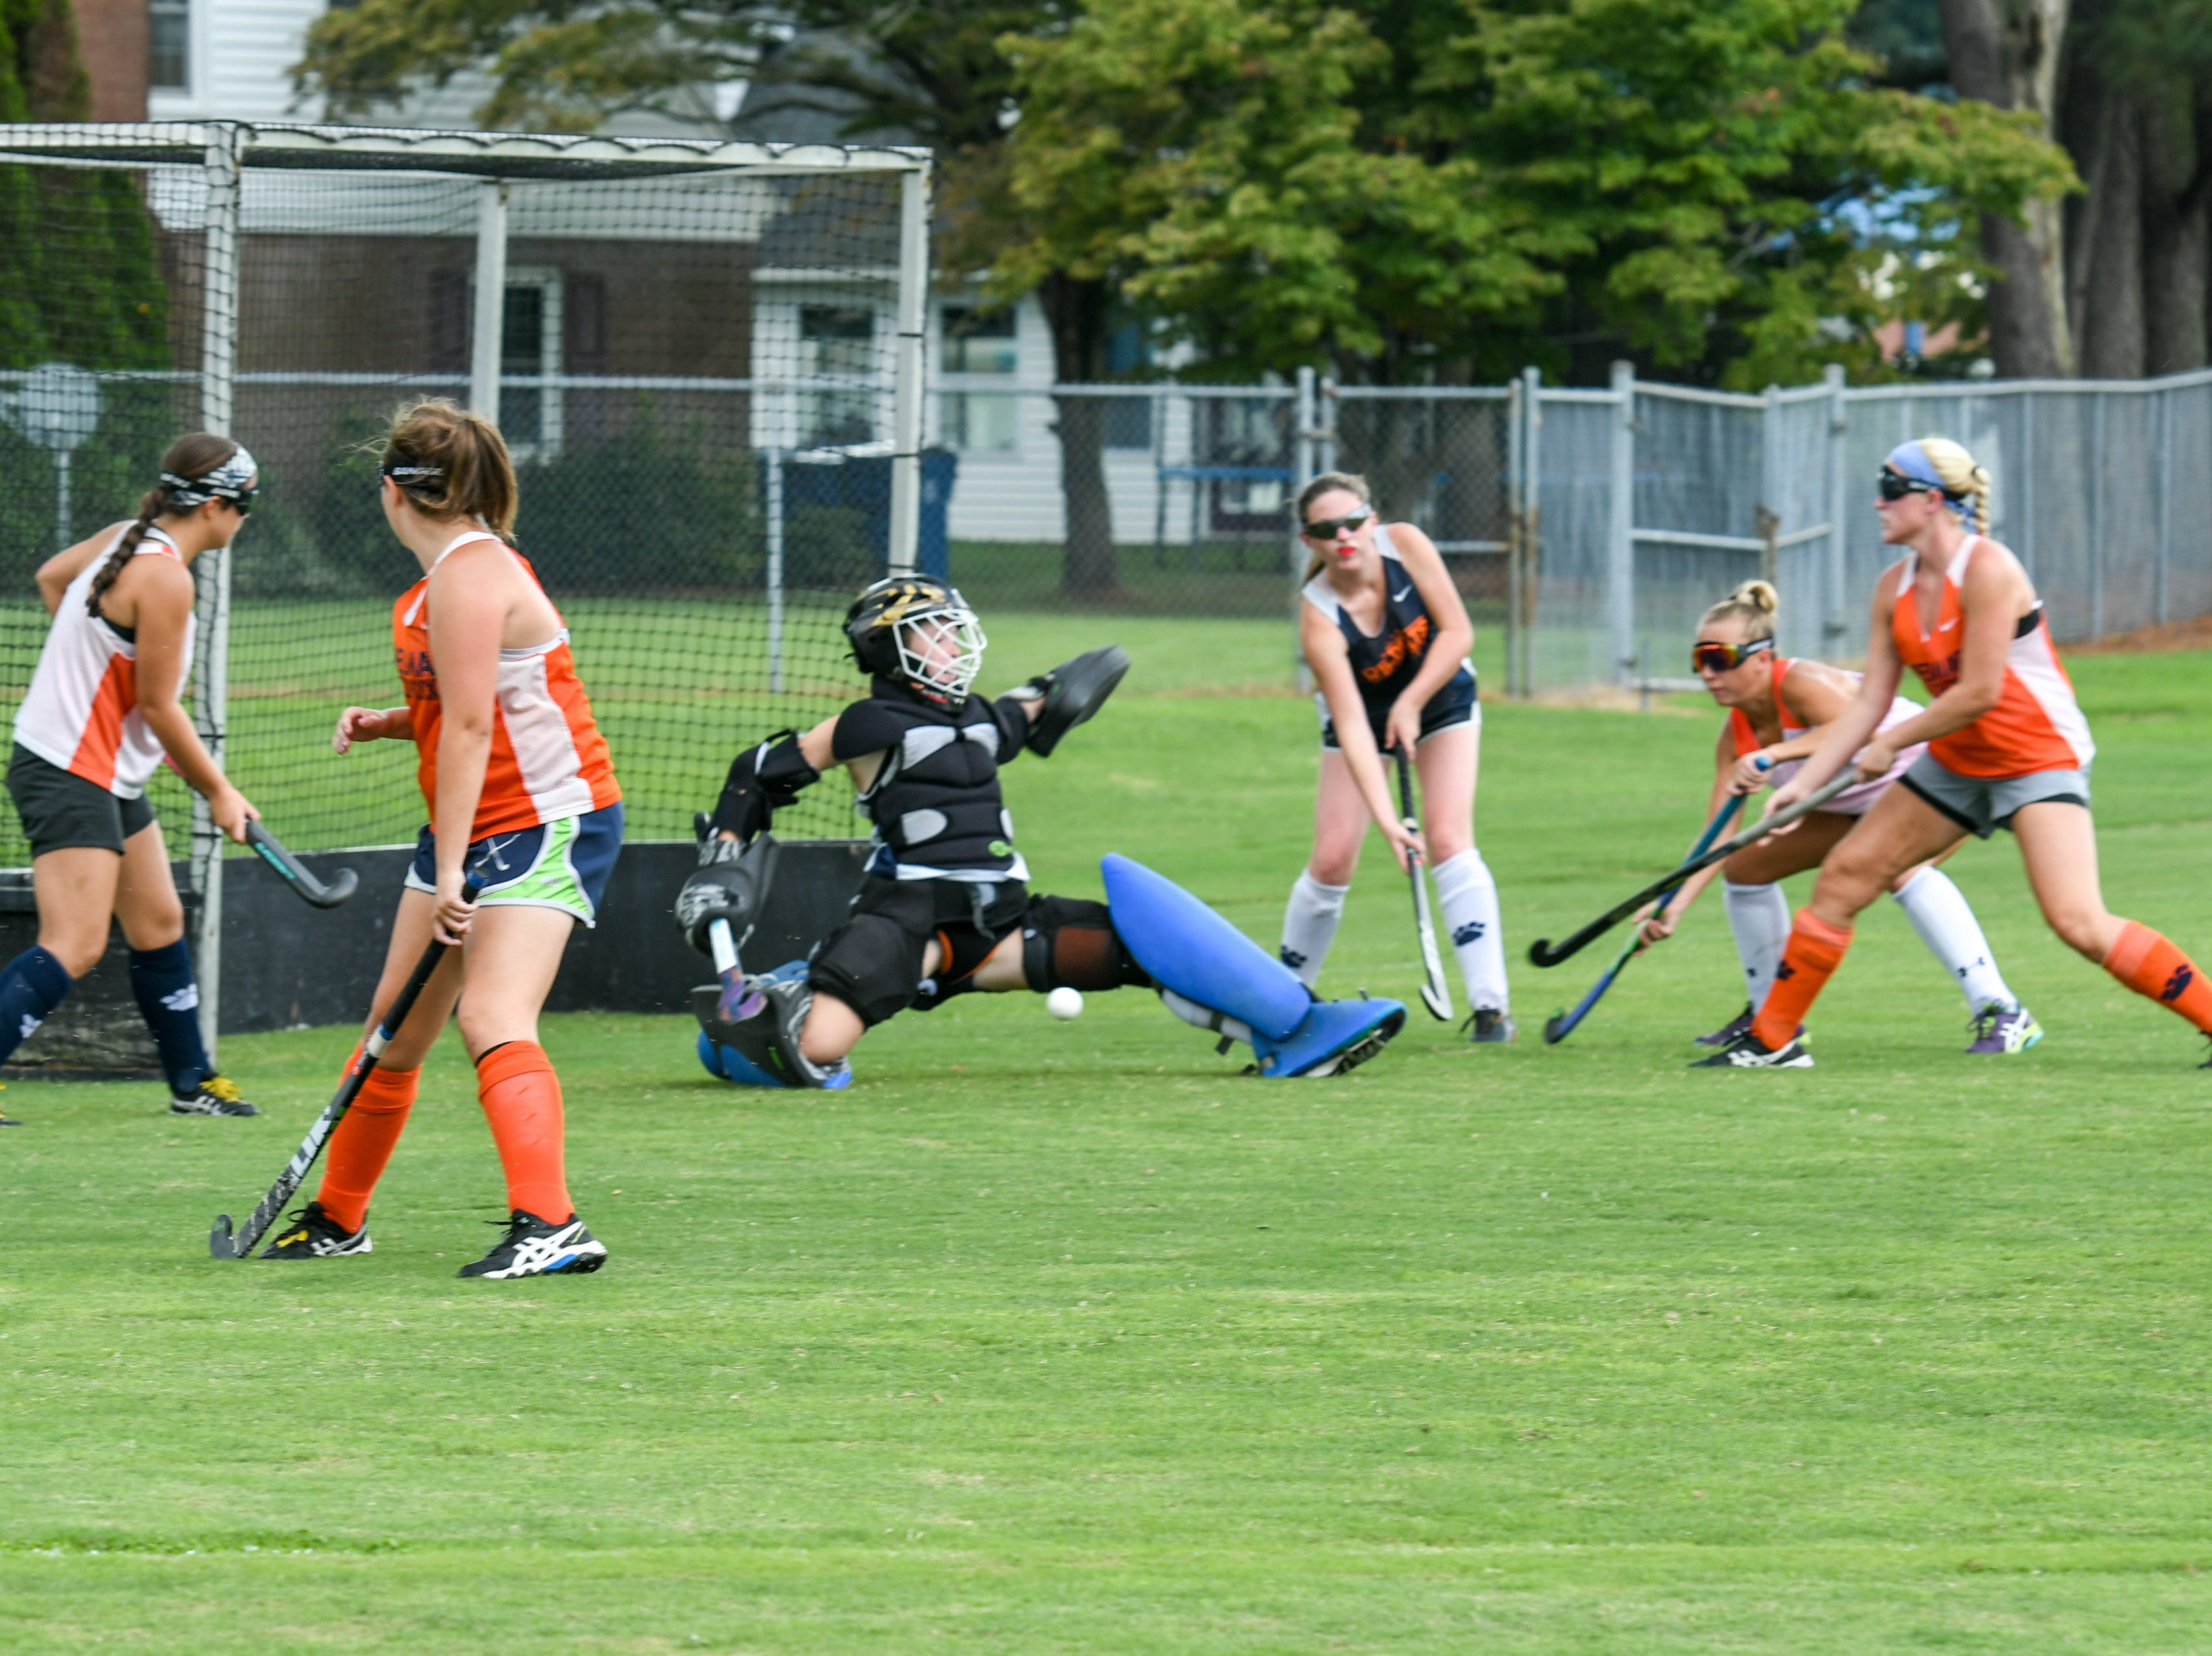 Goalie Kelly Davis lunges to stop a shot during a scrimmage at Delmar field hockey practice on Wednesday, Sept. 5.